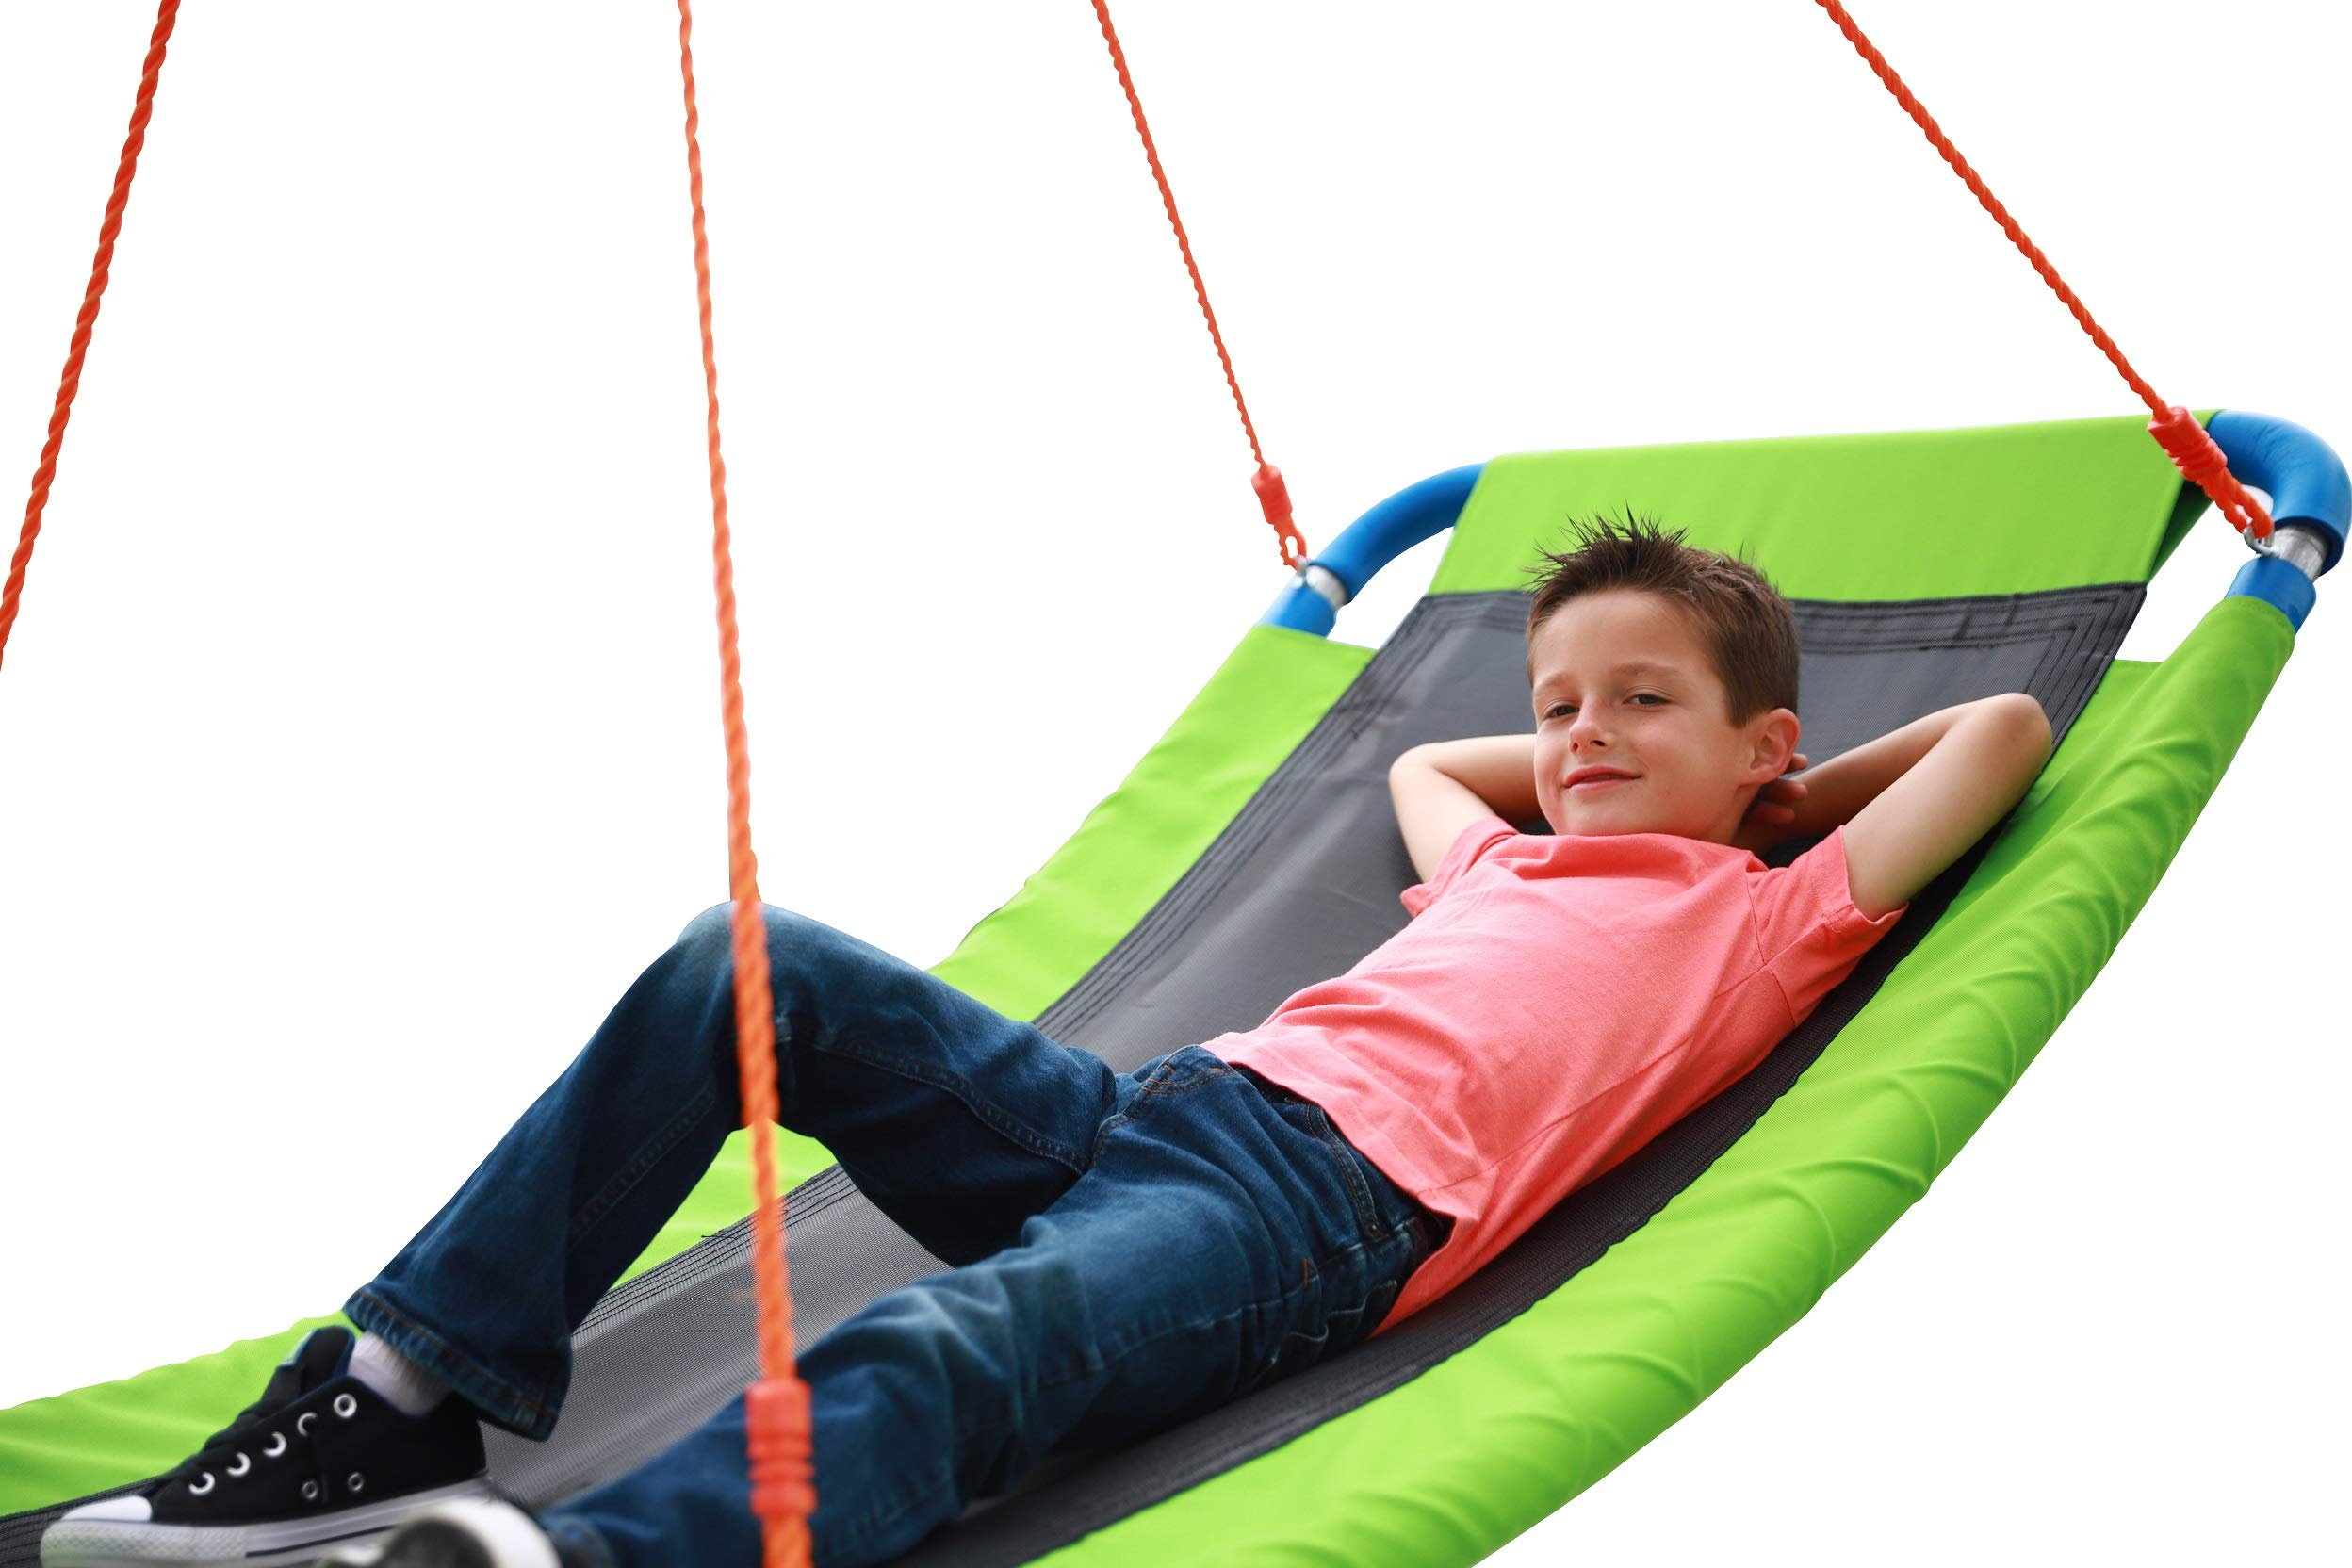 Giant Outdoor Platform Swing - Large 34'' x 60'' Swing in Green - 700 lb Weight Capacity - Durable Steel Frame - Waterproof - Adjustable Ropes - Easy to Install - Fun for Kids, Adults, Friends by SLIDEWHIZZER